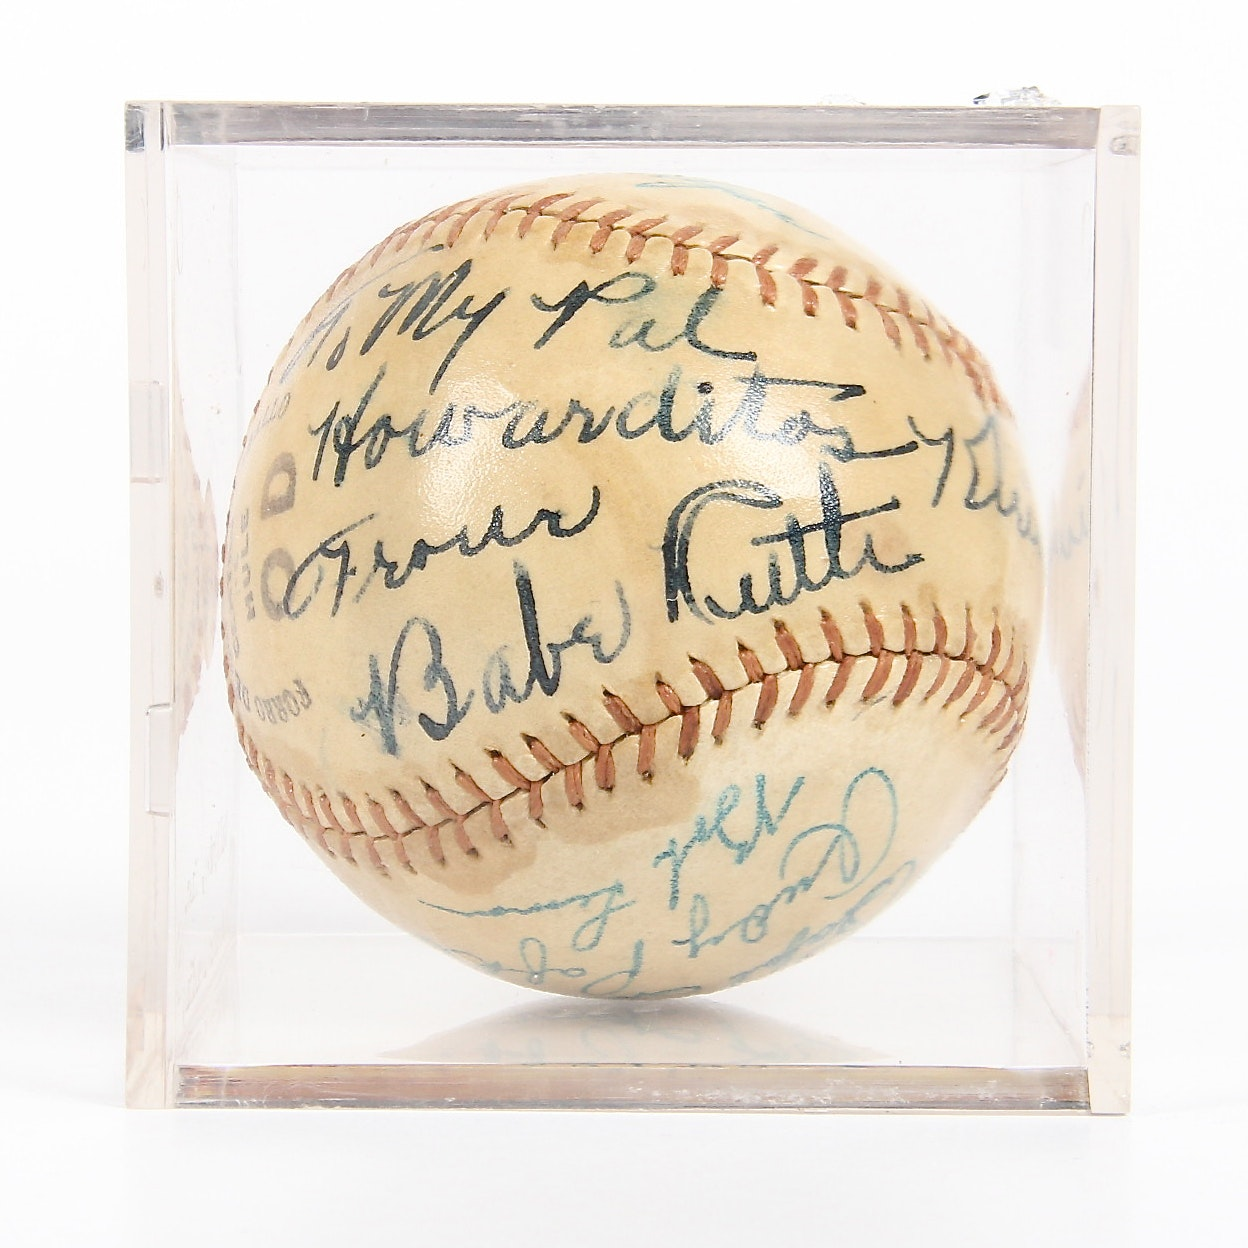 Vintage Babe Ruth, Jackie Robinson and Bob Feller Signed Baseball with Other Signatures